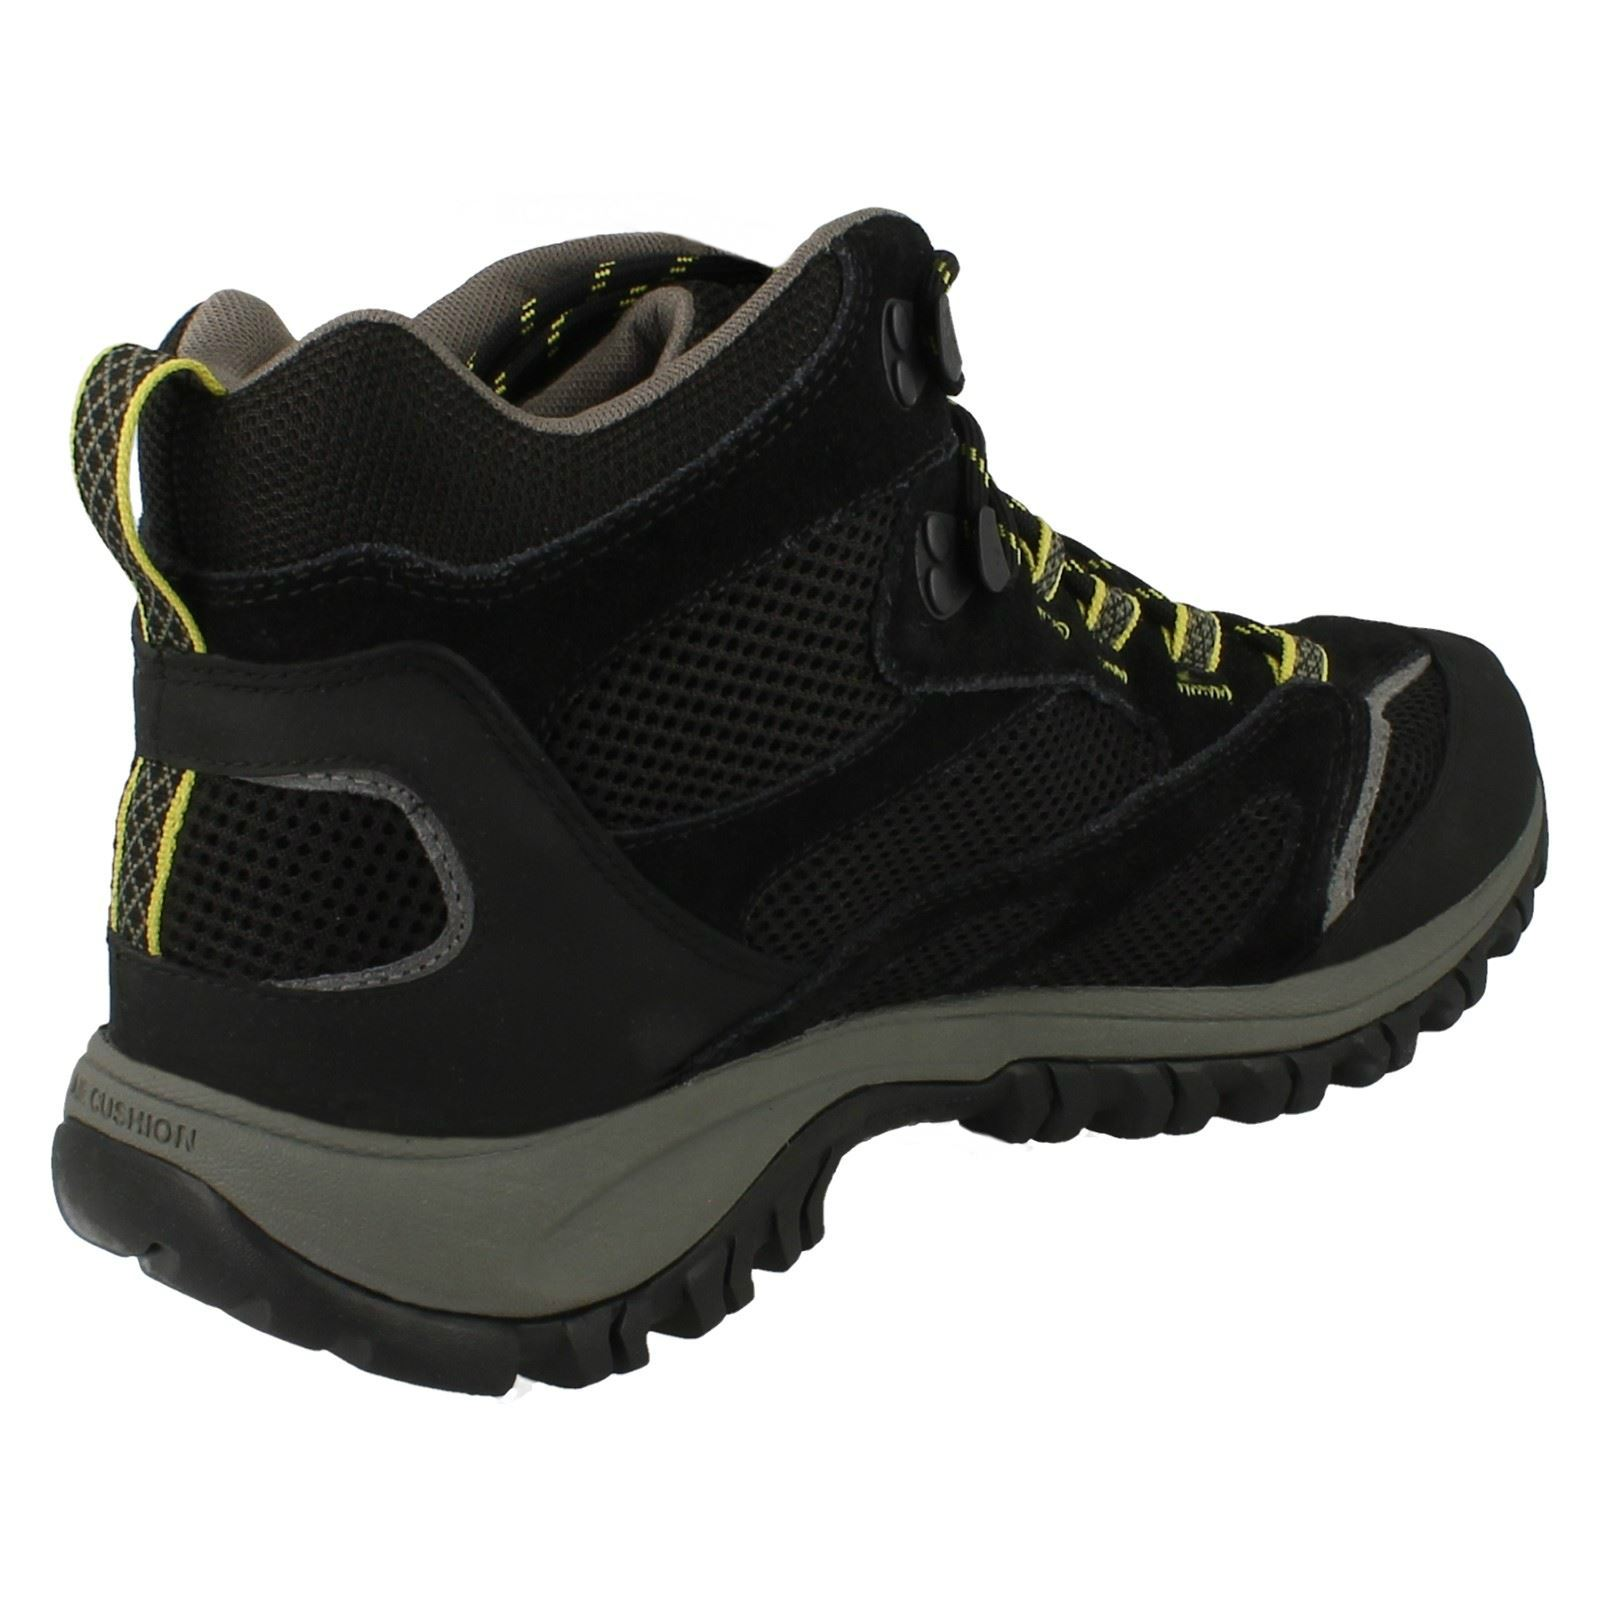 thumbnail 5 - Mens-Merrell-Waterproof-Walking-Boots-039-Phoenix-Mid-039